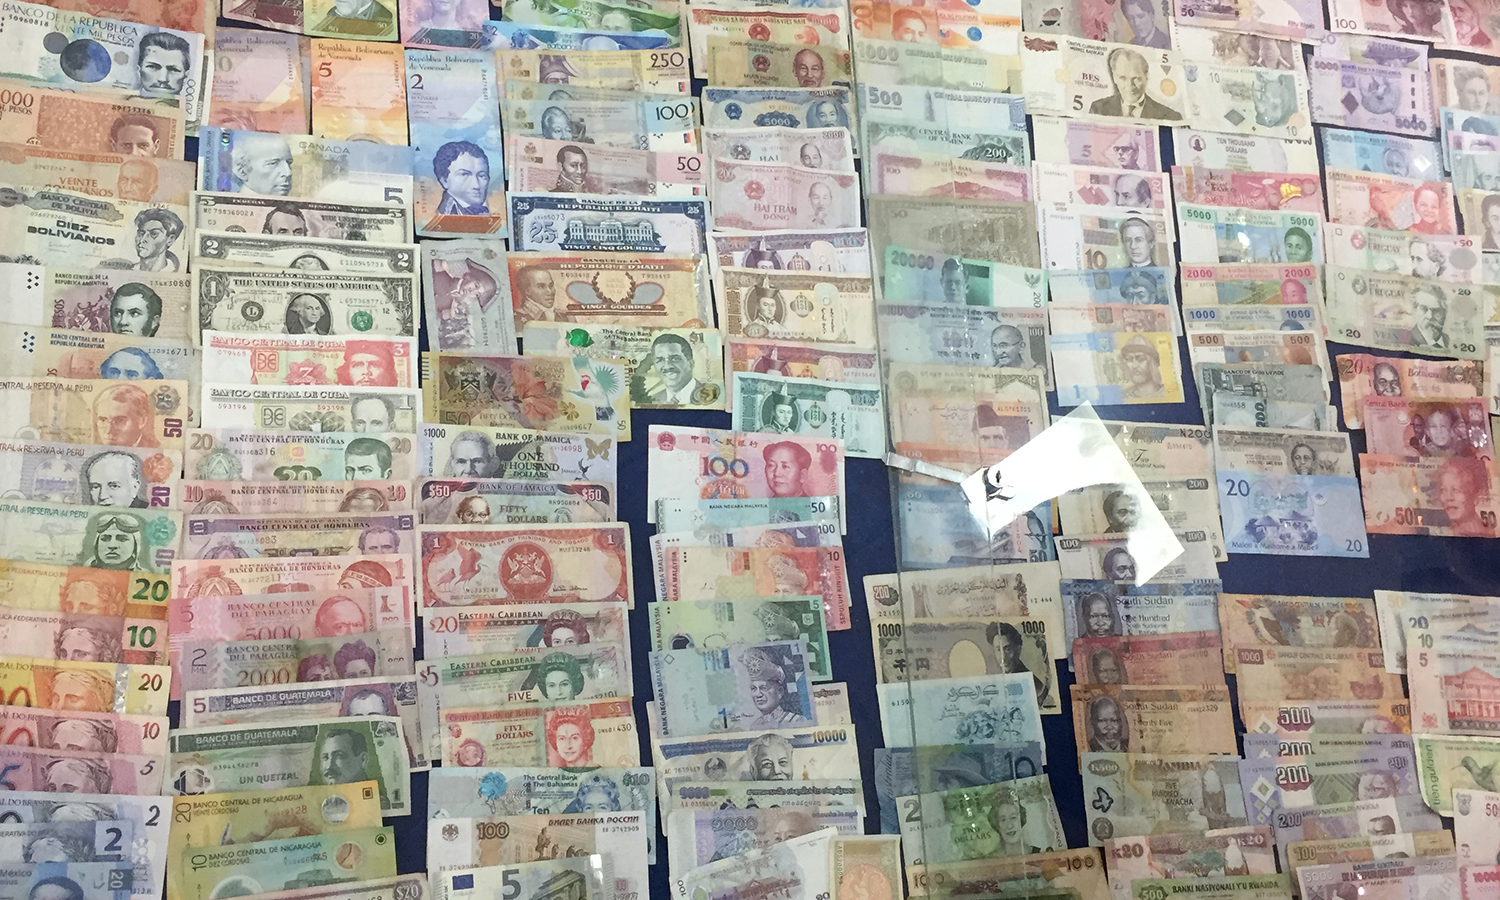 World currency brought by tourists is on display at the Latin American School of Medicine